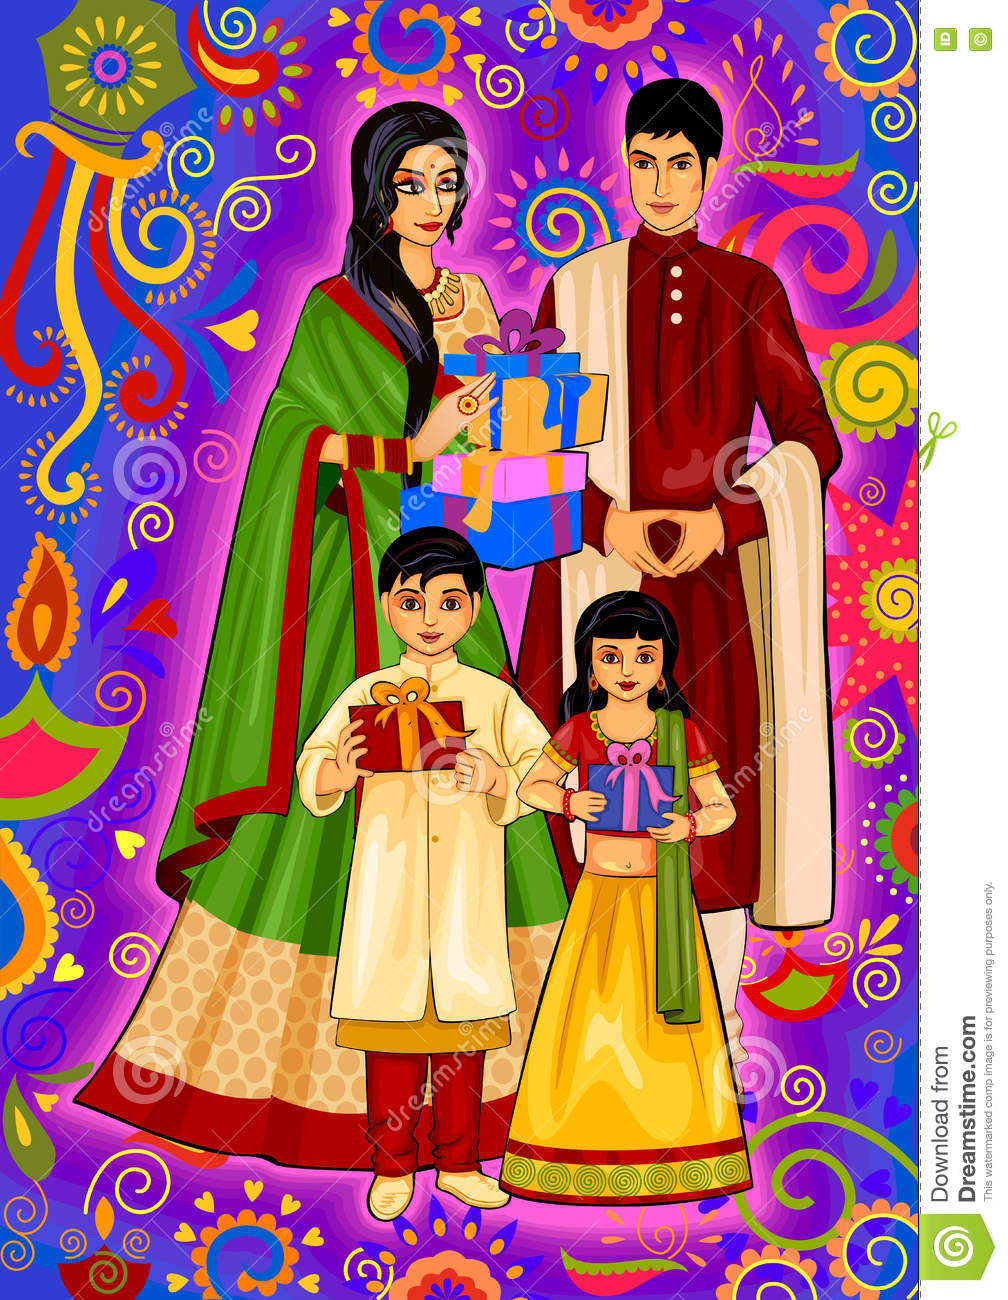 Indian Family With Gift For Diwali Festival Celebration In India ... for Deepavali Celebration Clipart  575cpg